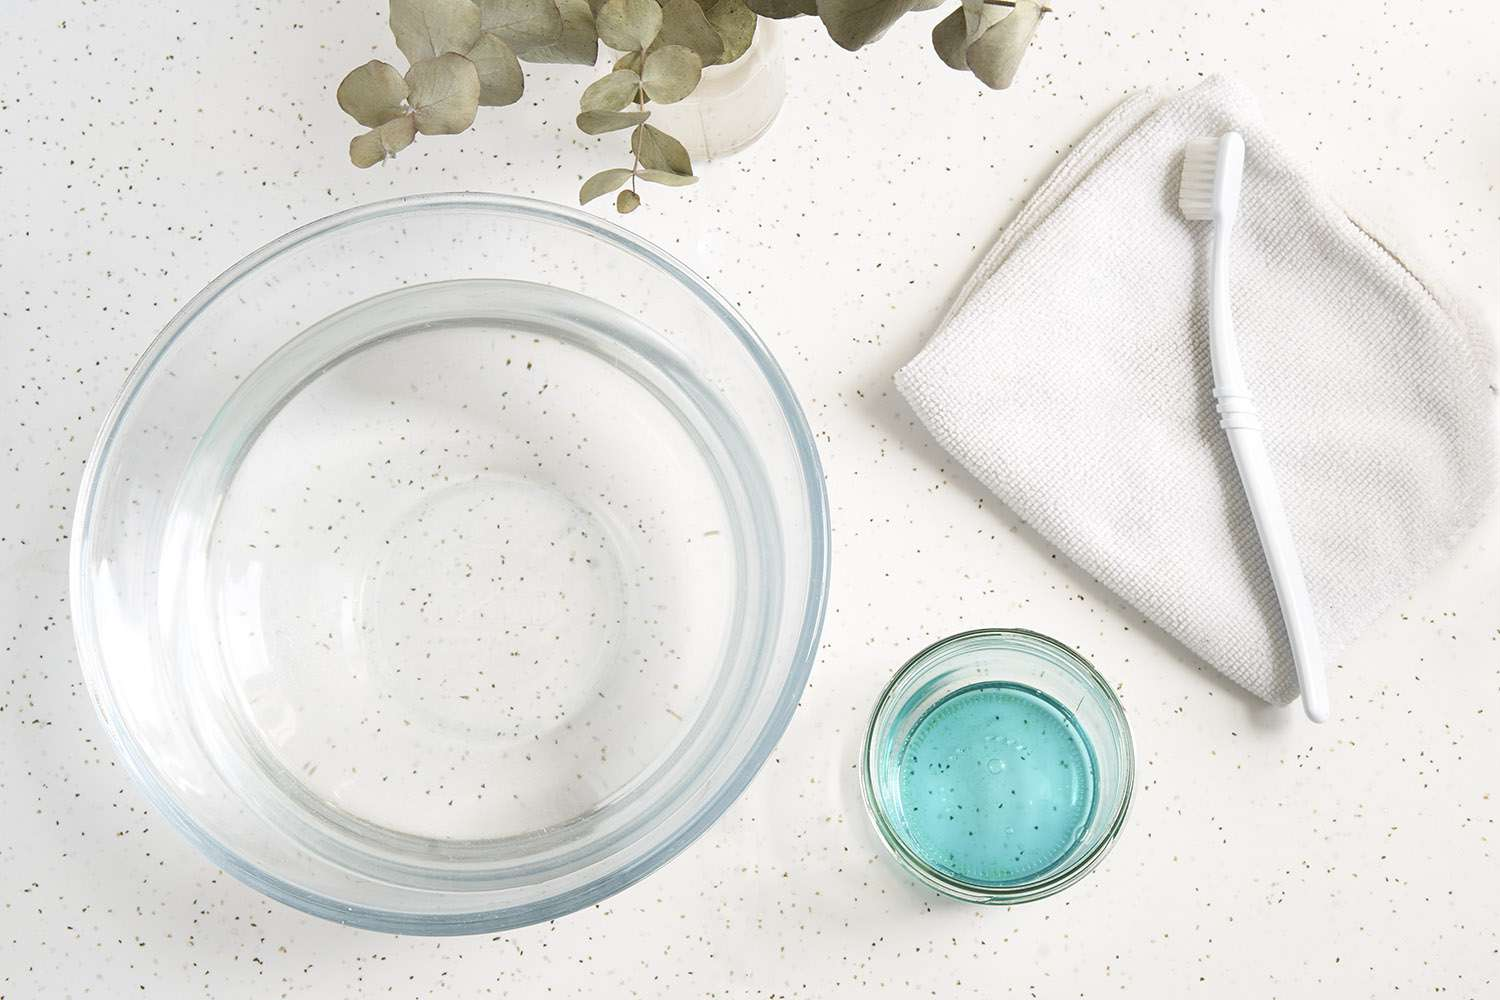 Items for cleaning a straw handbag